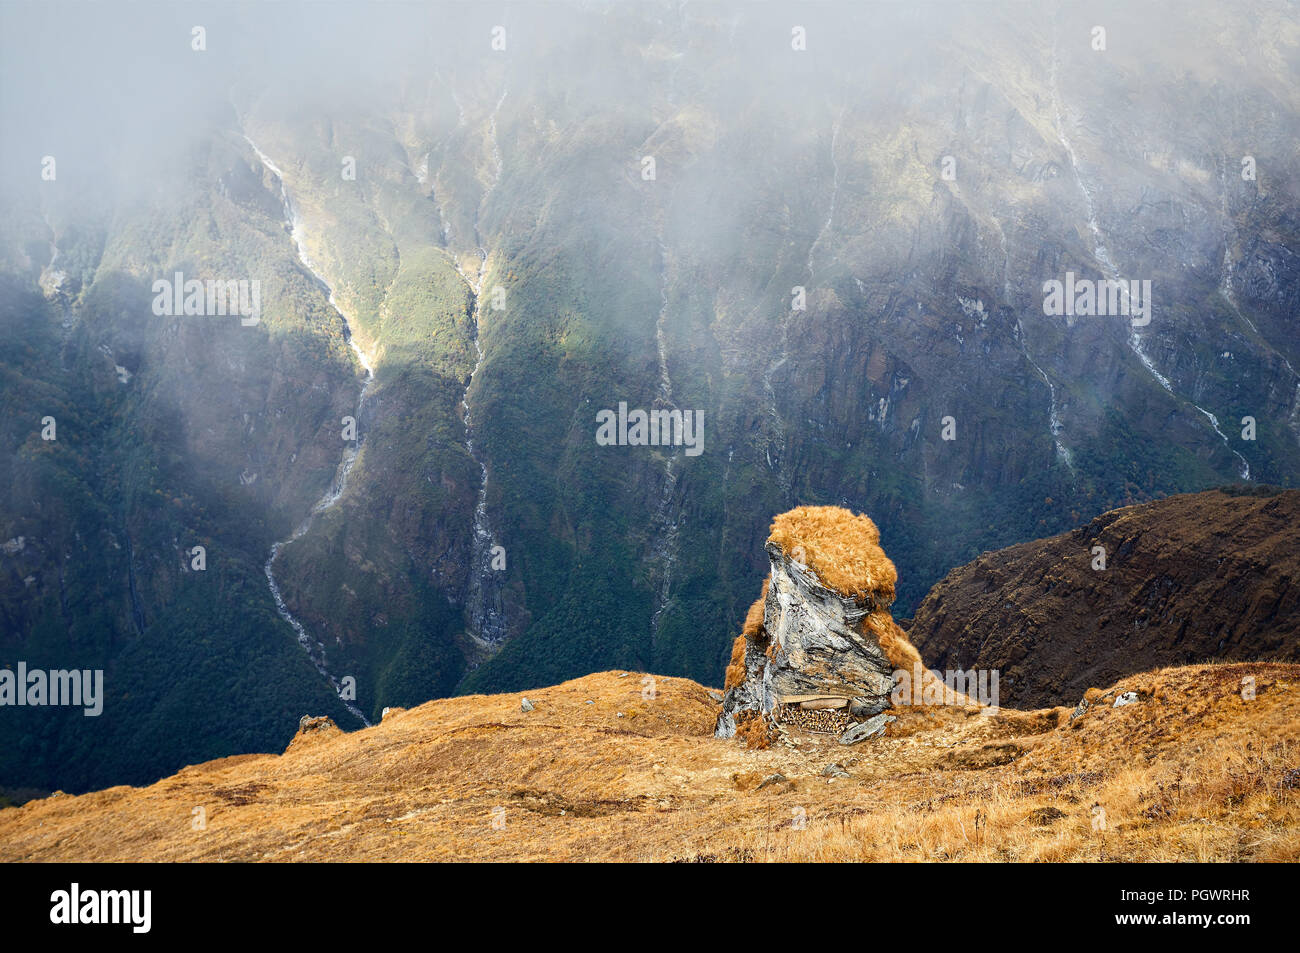 Landscape of Rocks and Waterfalls at foggy day in Himalaya Mountains in Nepal - Stock Image